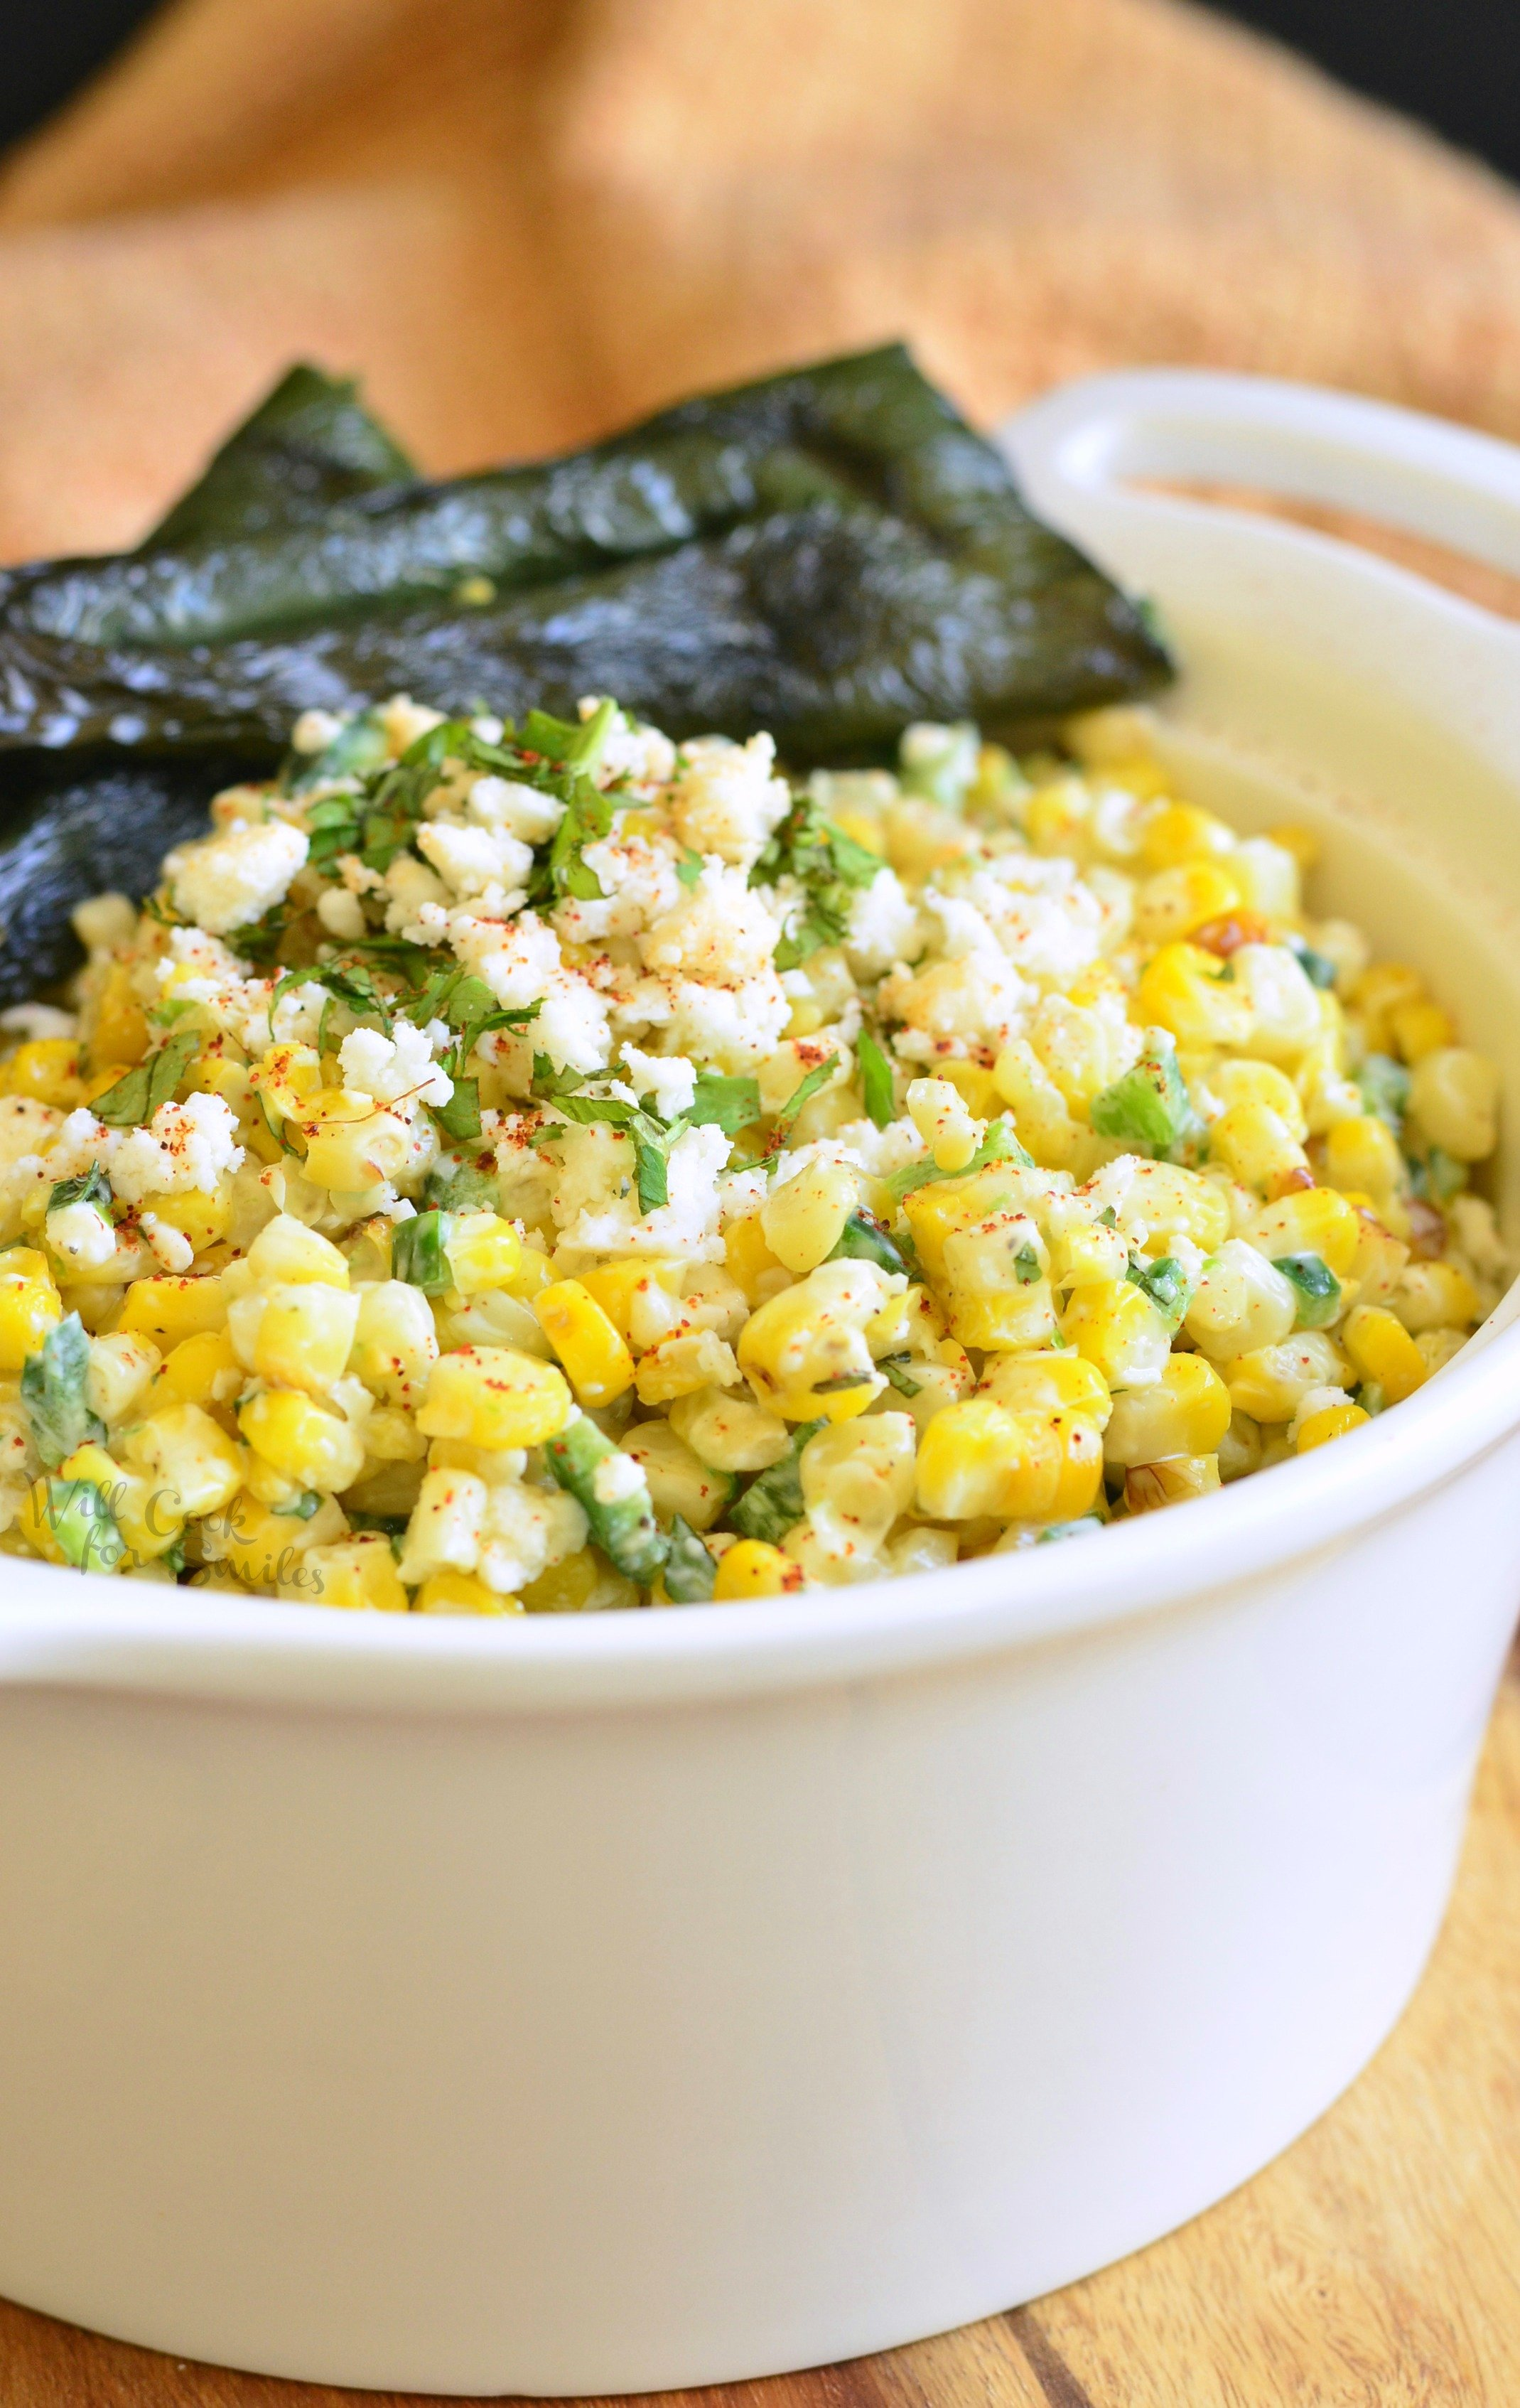 corn salad topped with crumbled cheese with some grilled poblano peppers in a bowl